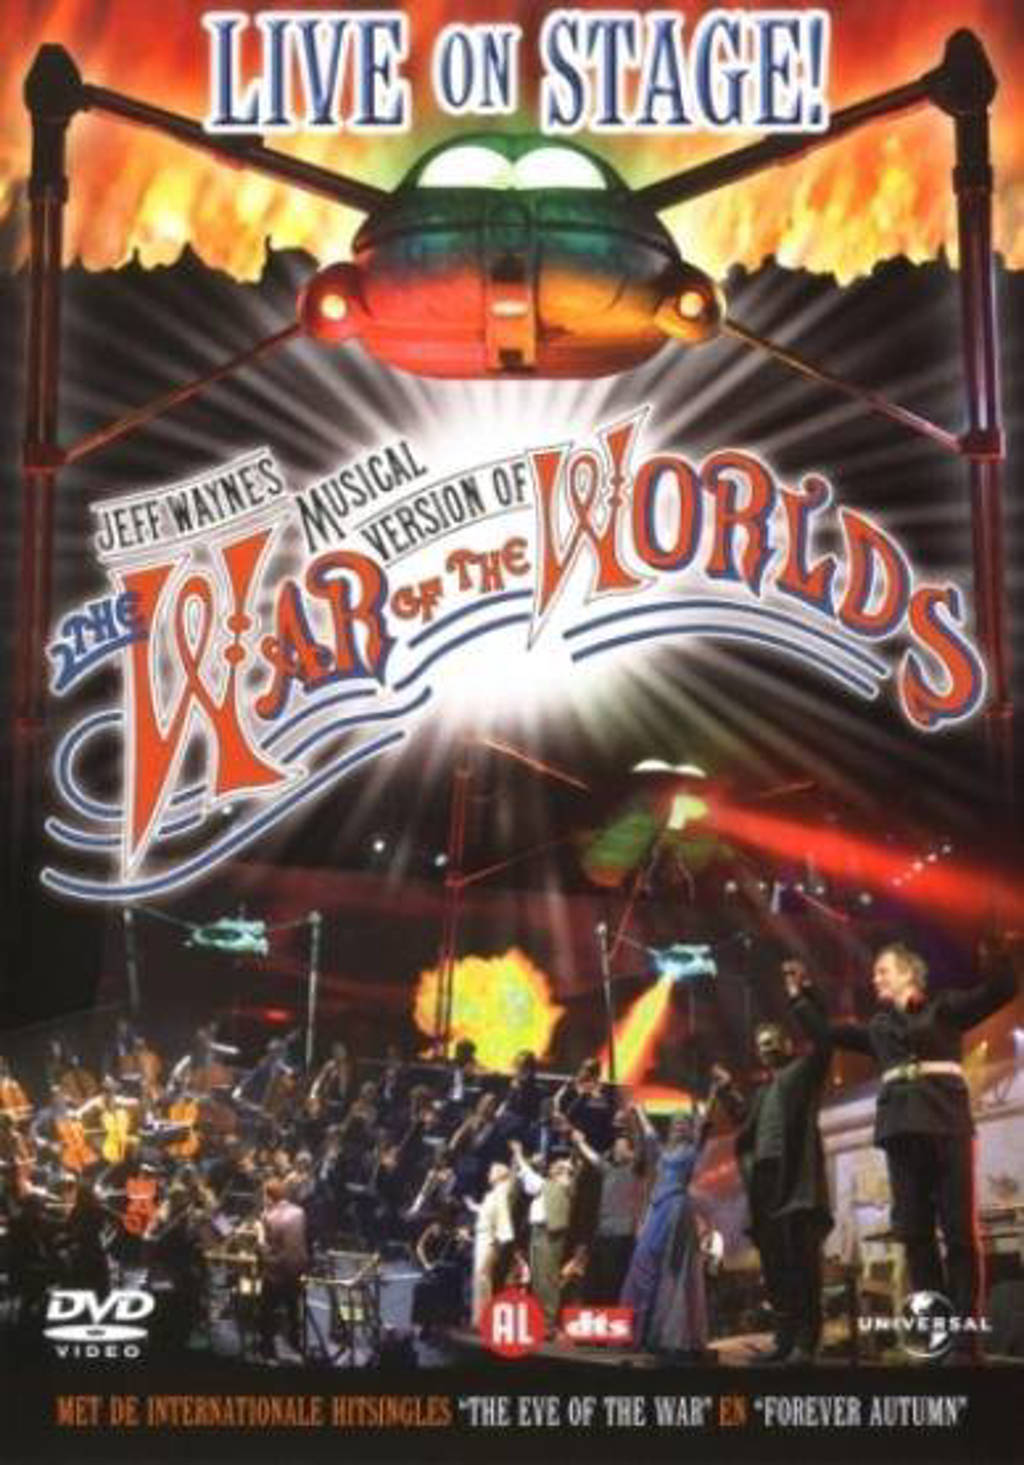 War of the worlds - the musical (DVD)